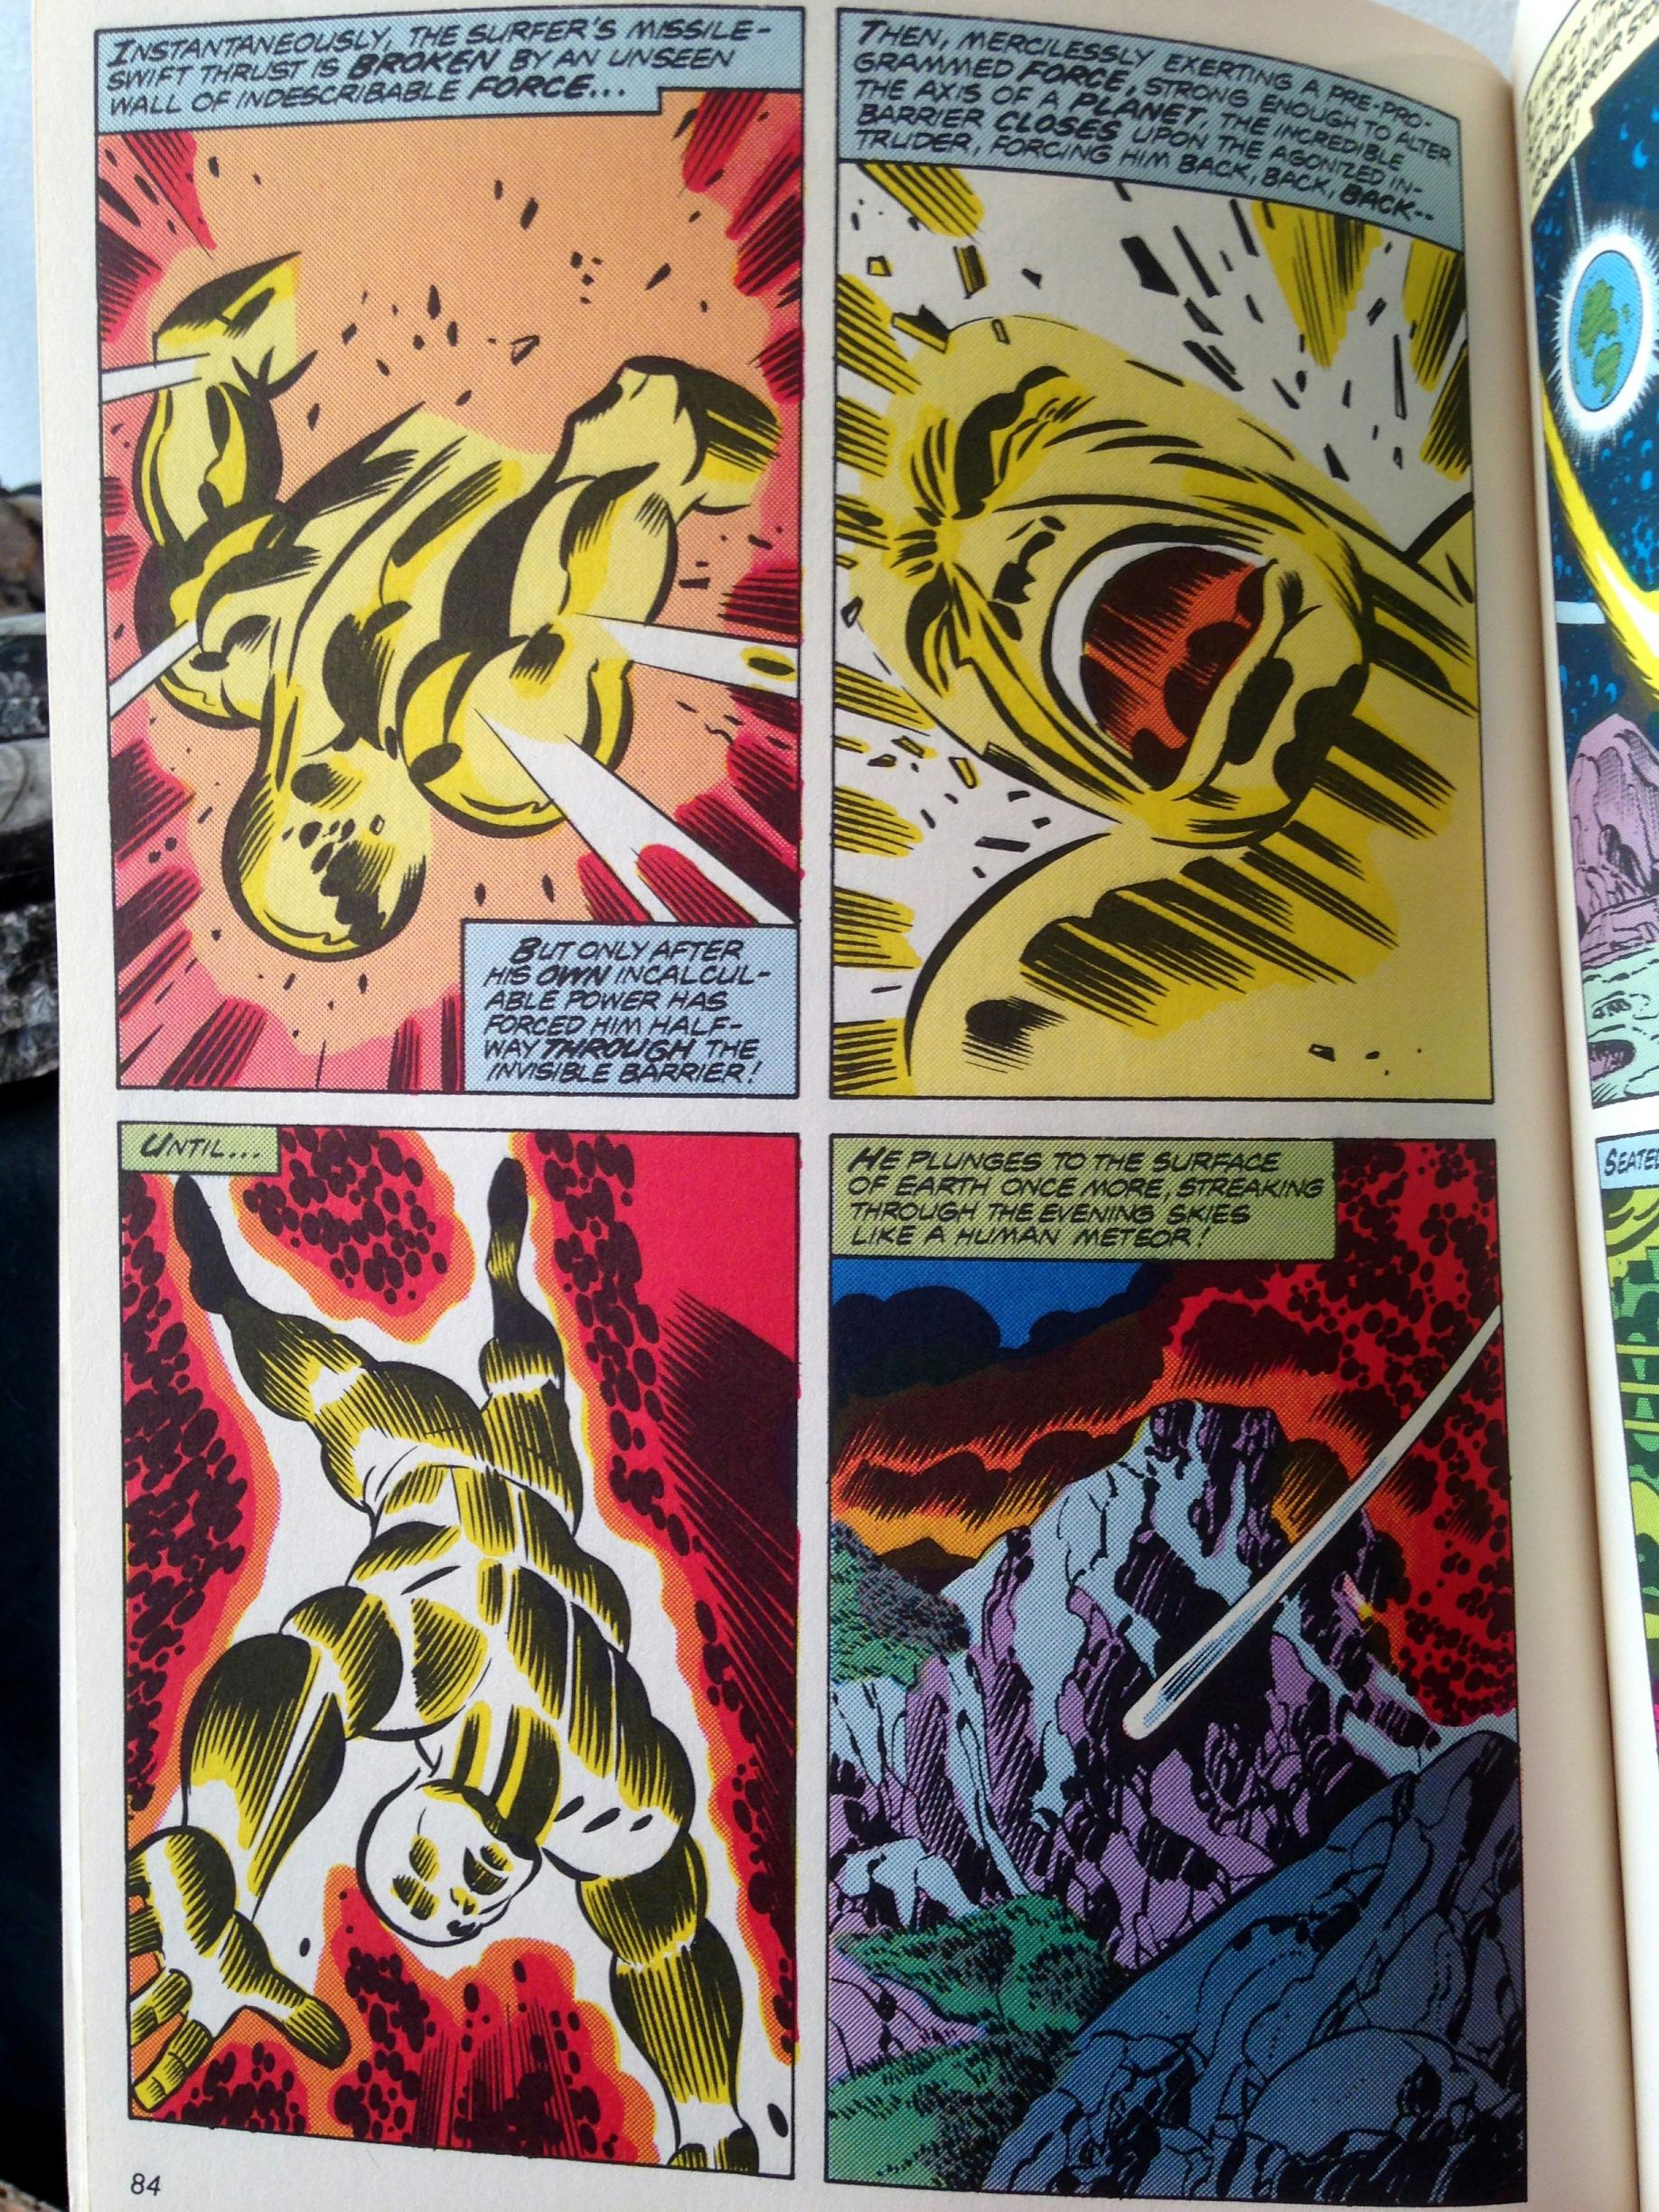 Silver Surfer by Stan Lee and Jack Kirby (14)